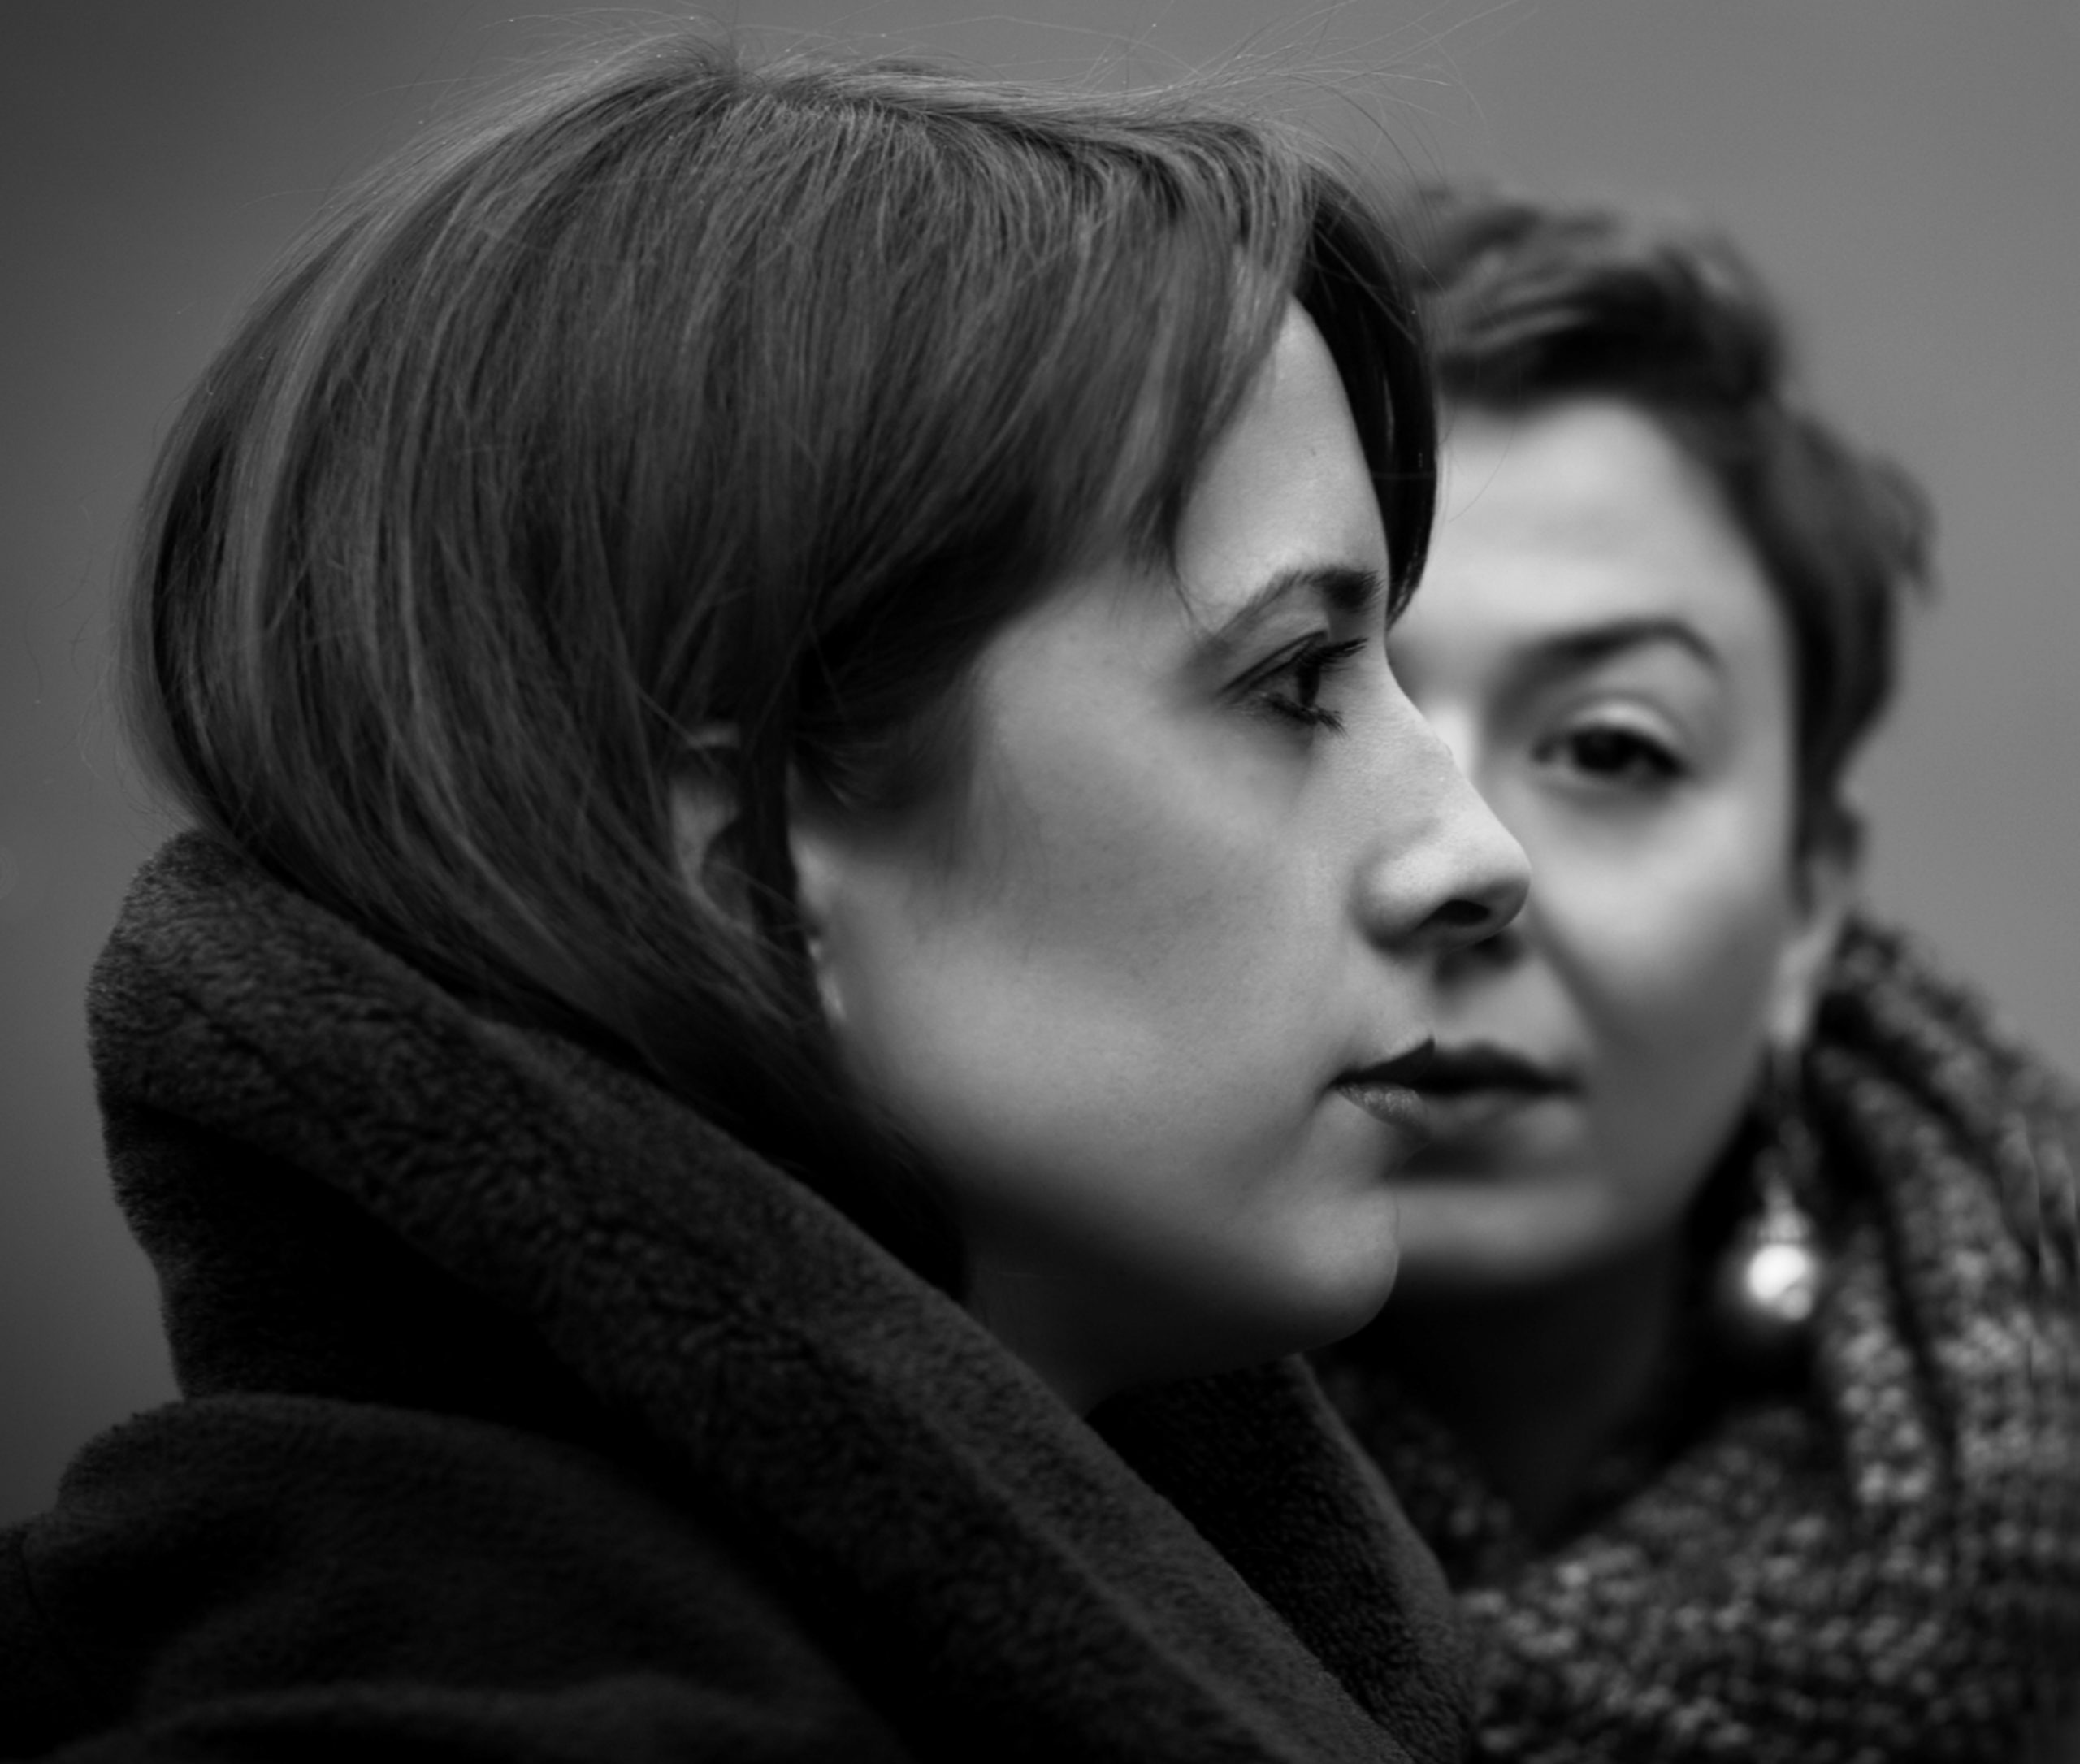 Marie-Pierre Roy, Justine Eckhaut (at the right)